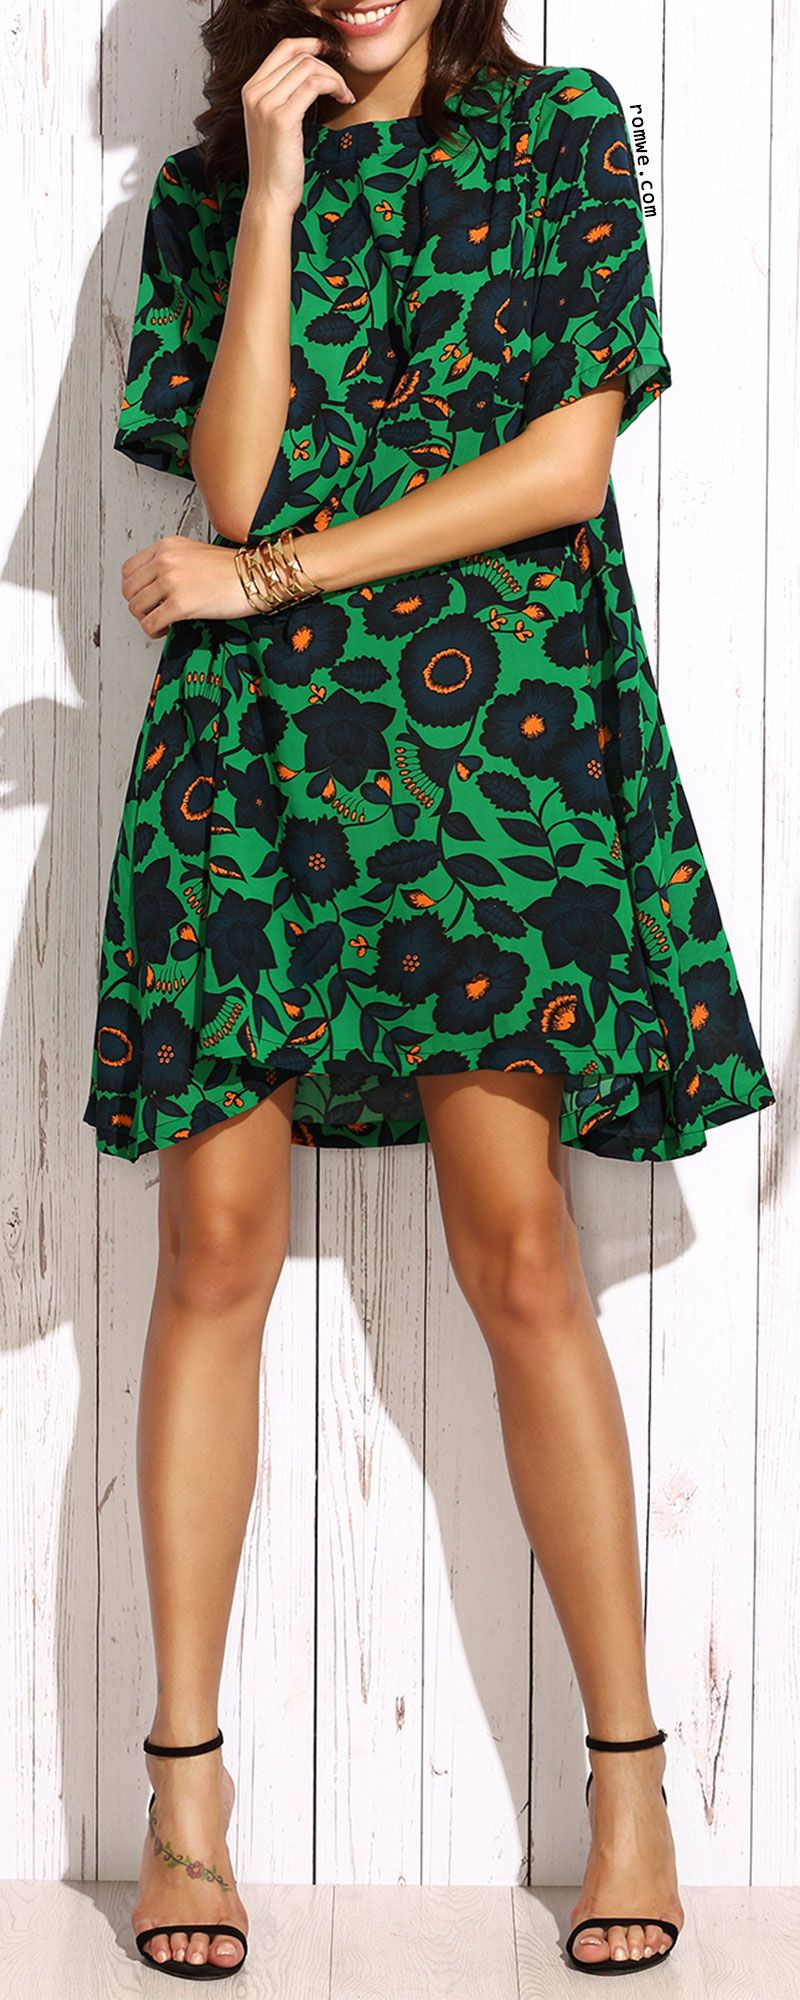 Dark green floral shift dress with black sandals romwe the